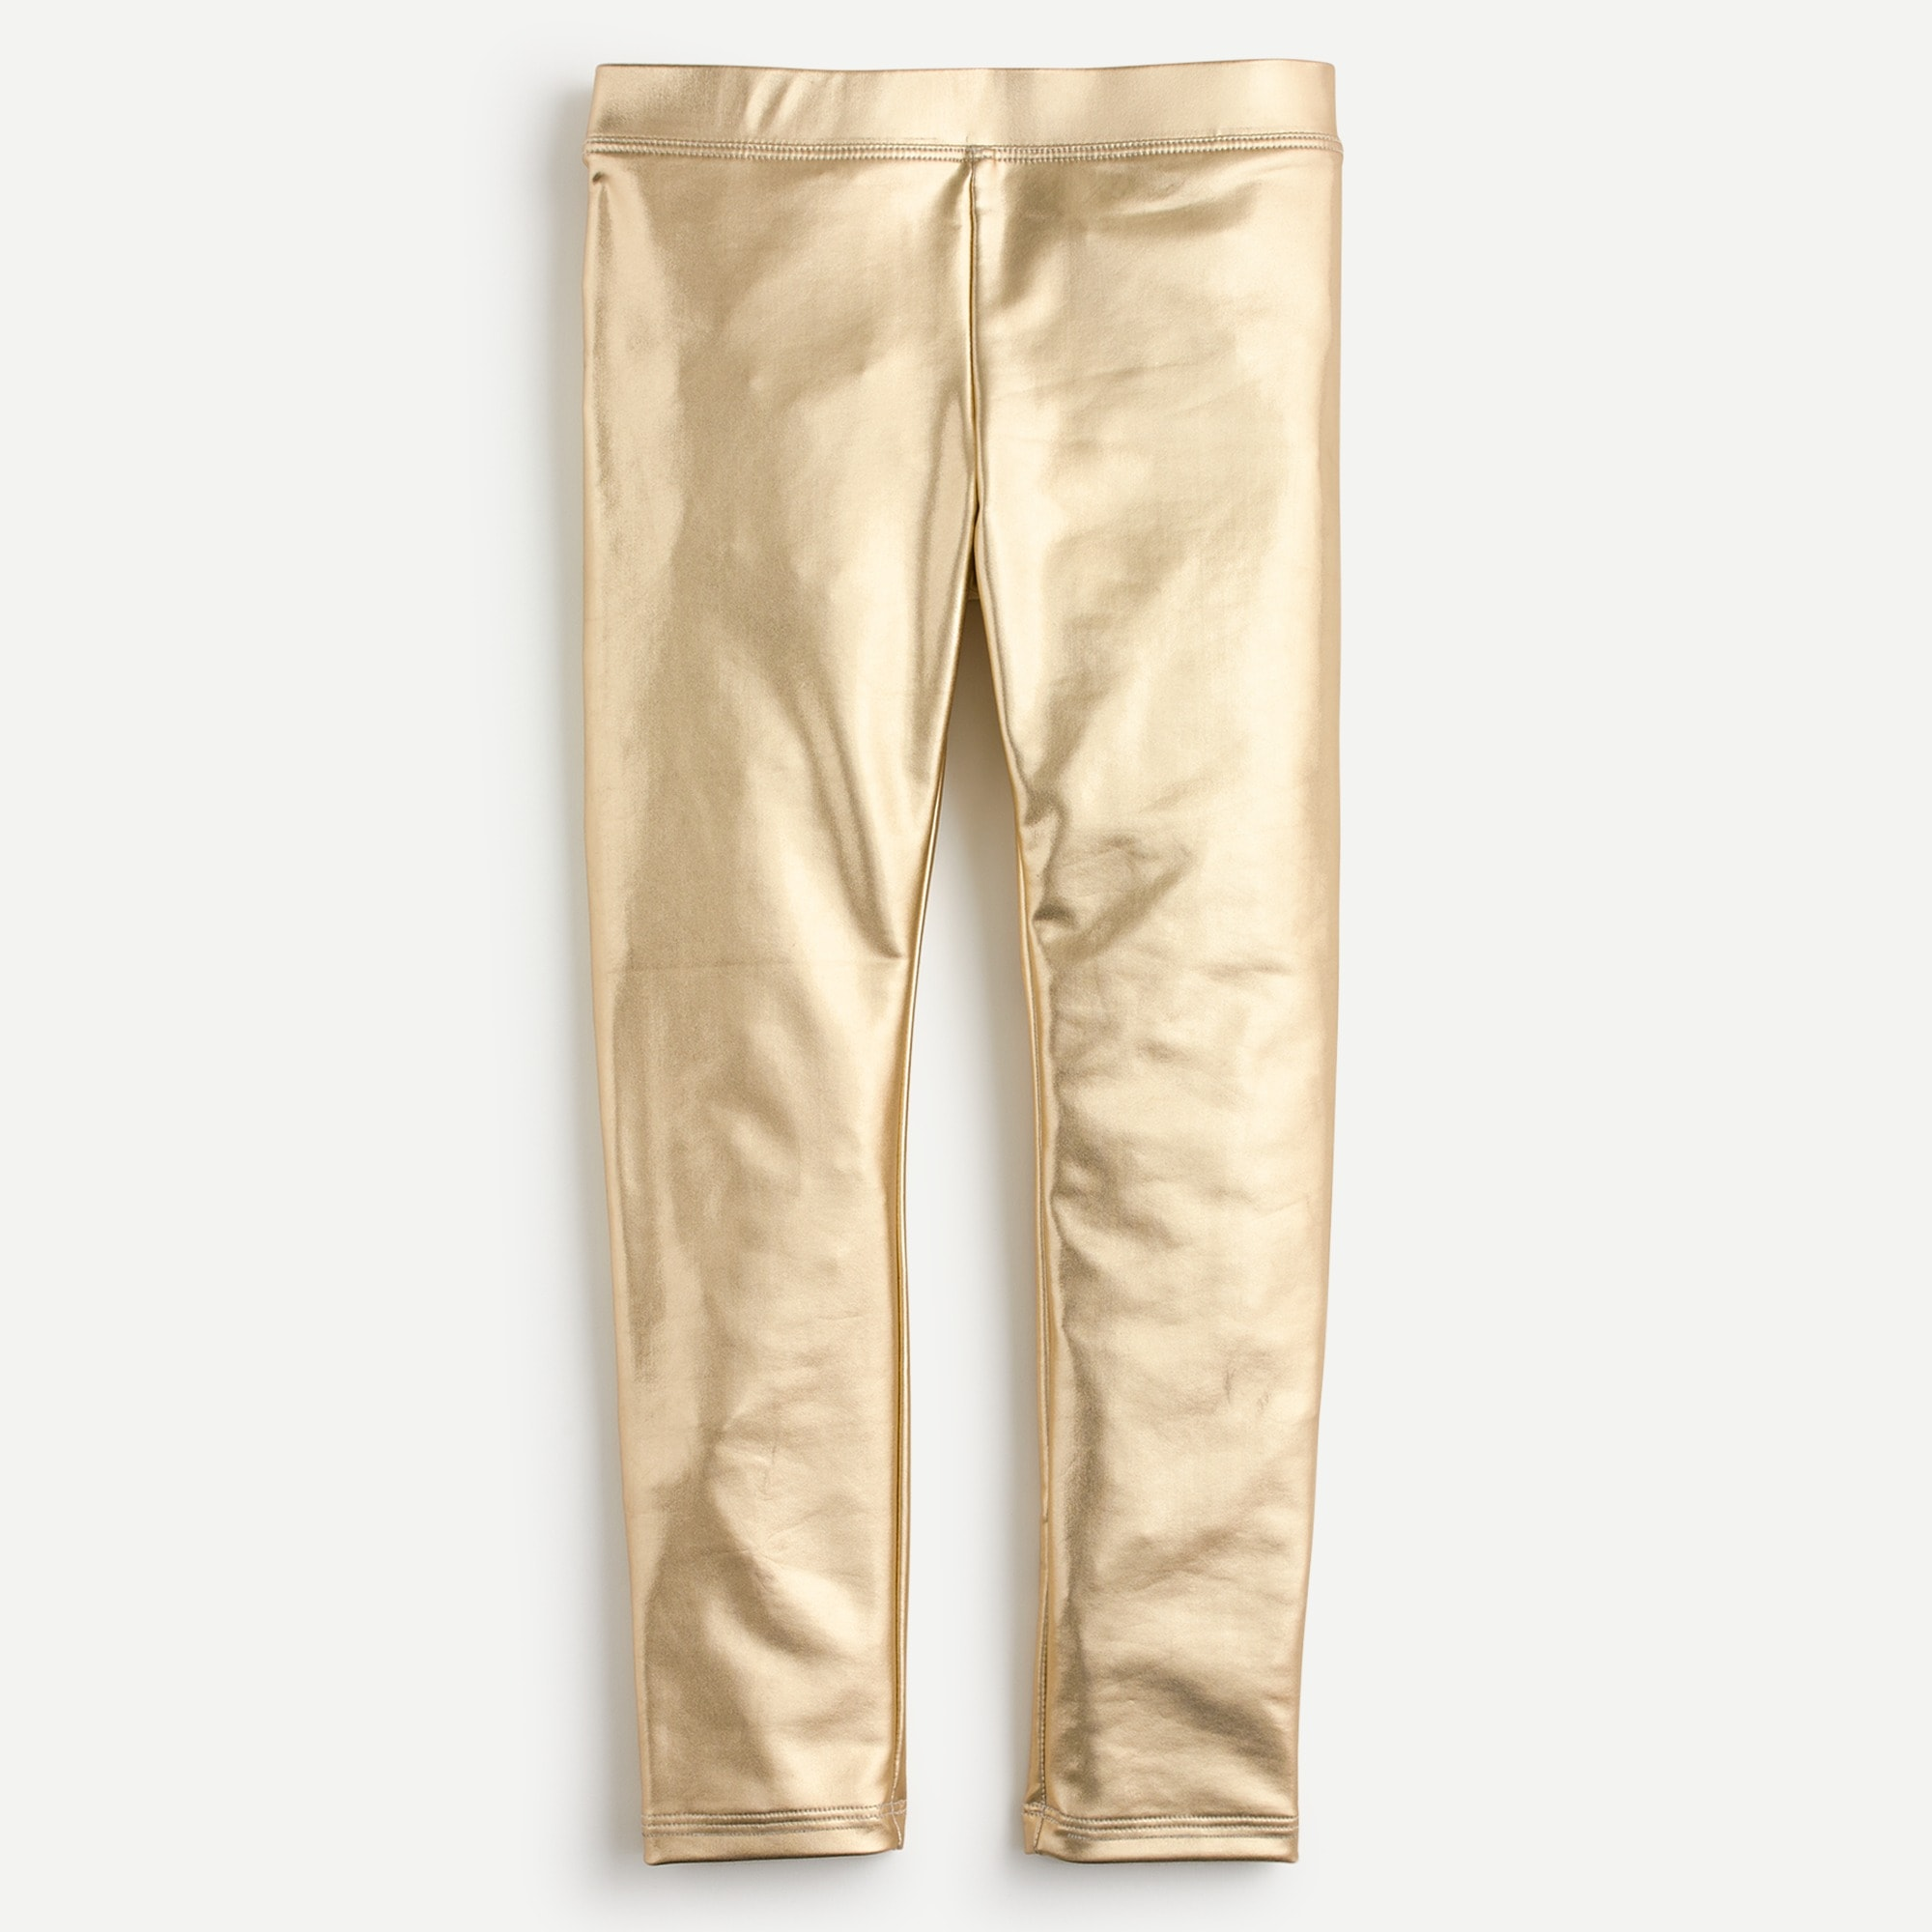 Girls' everyday leggings in metallic girl pants c